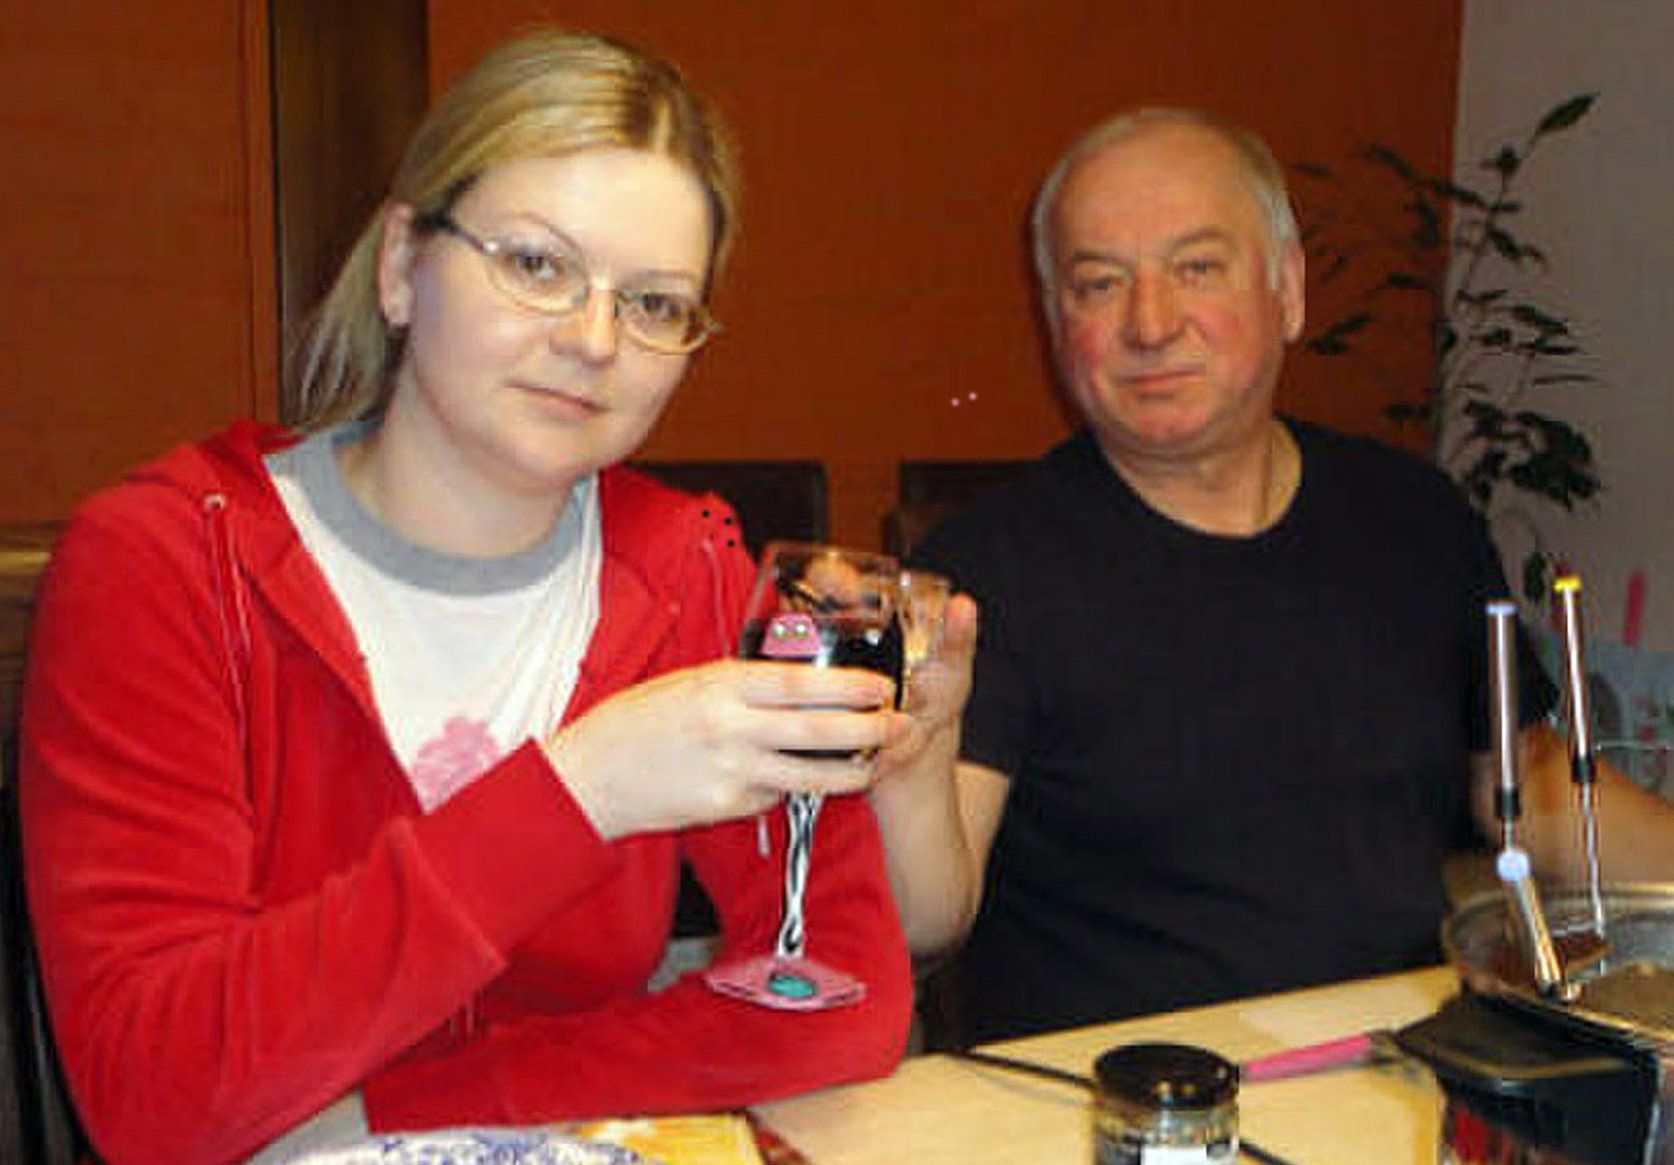 Sergei Skripal and his daughter,